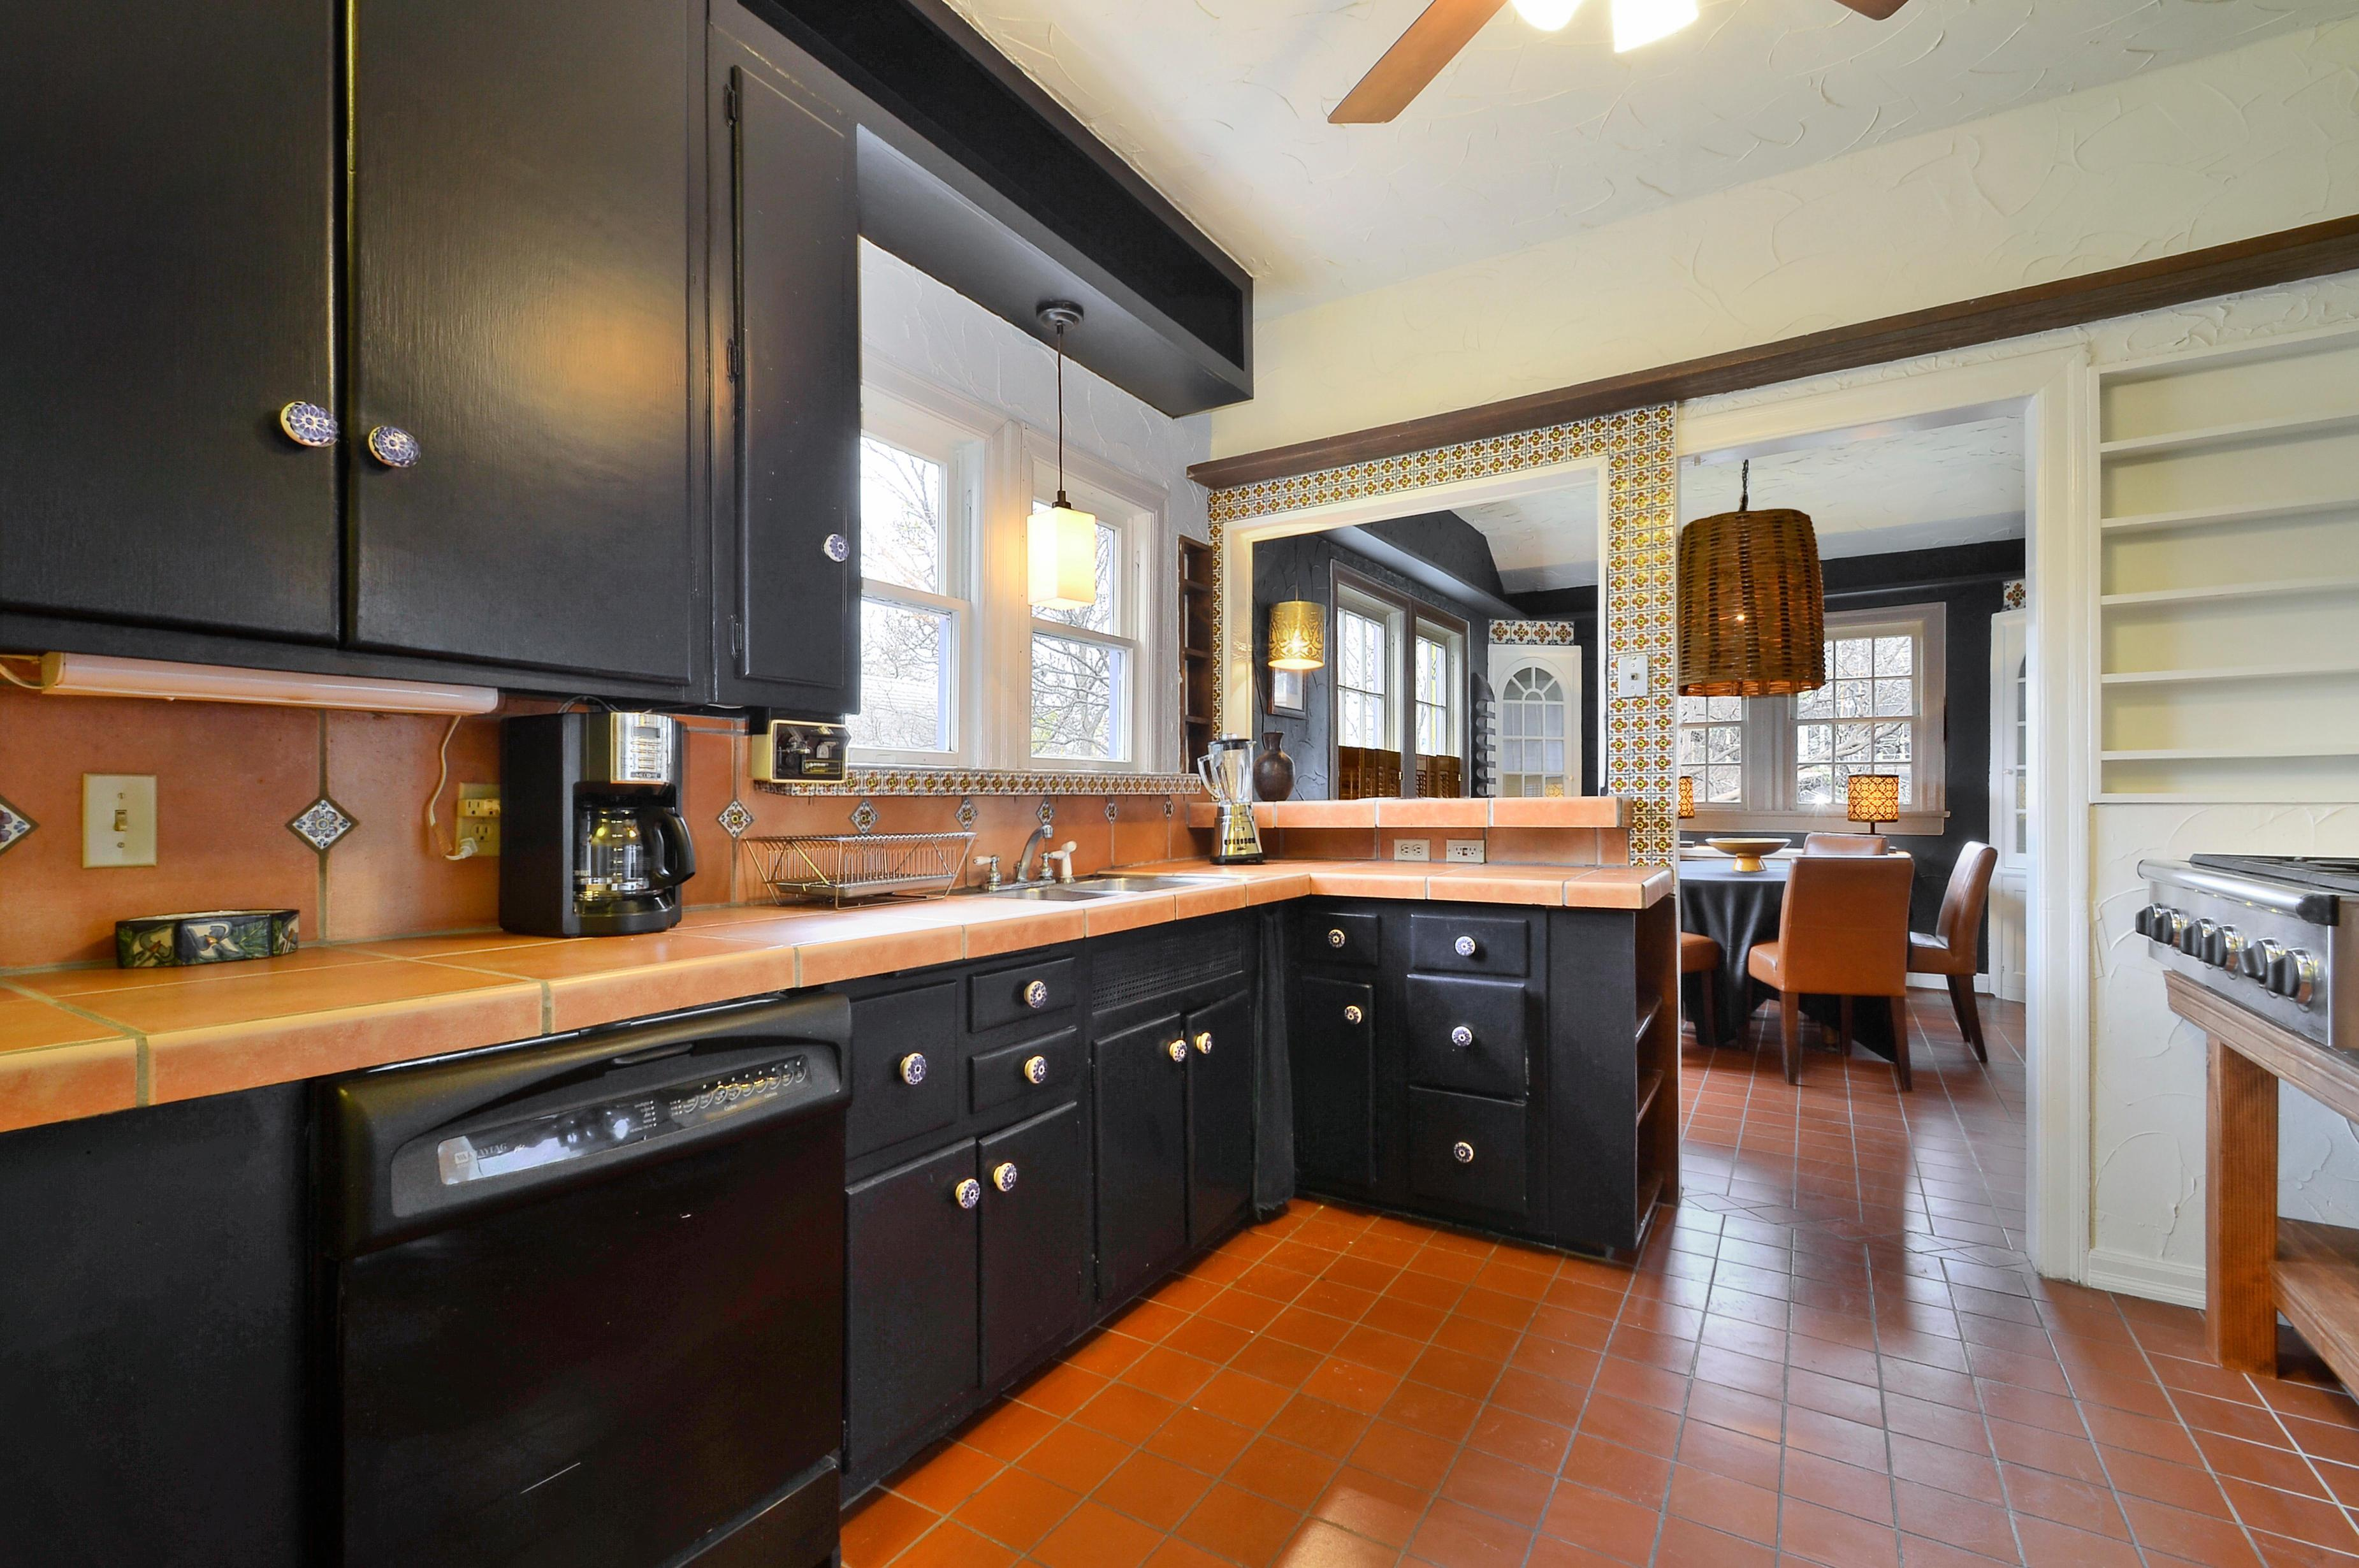 The fully equipped kitchen has a full suite of appliances, including a six-burner gas stove and a double oven.